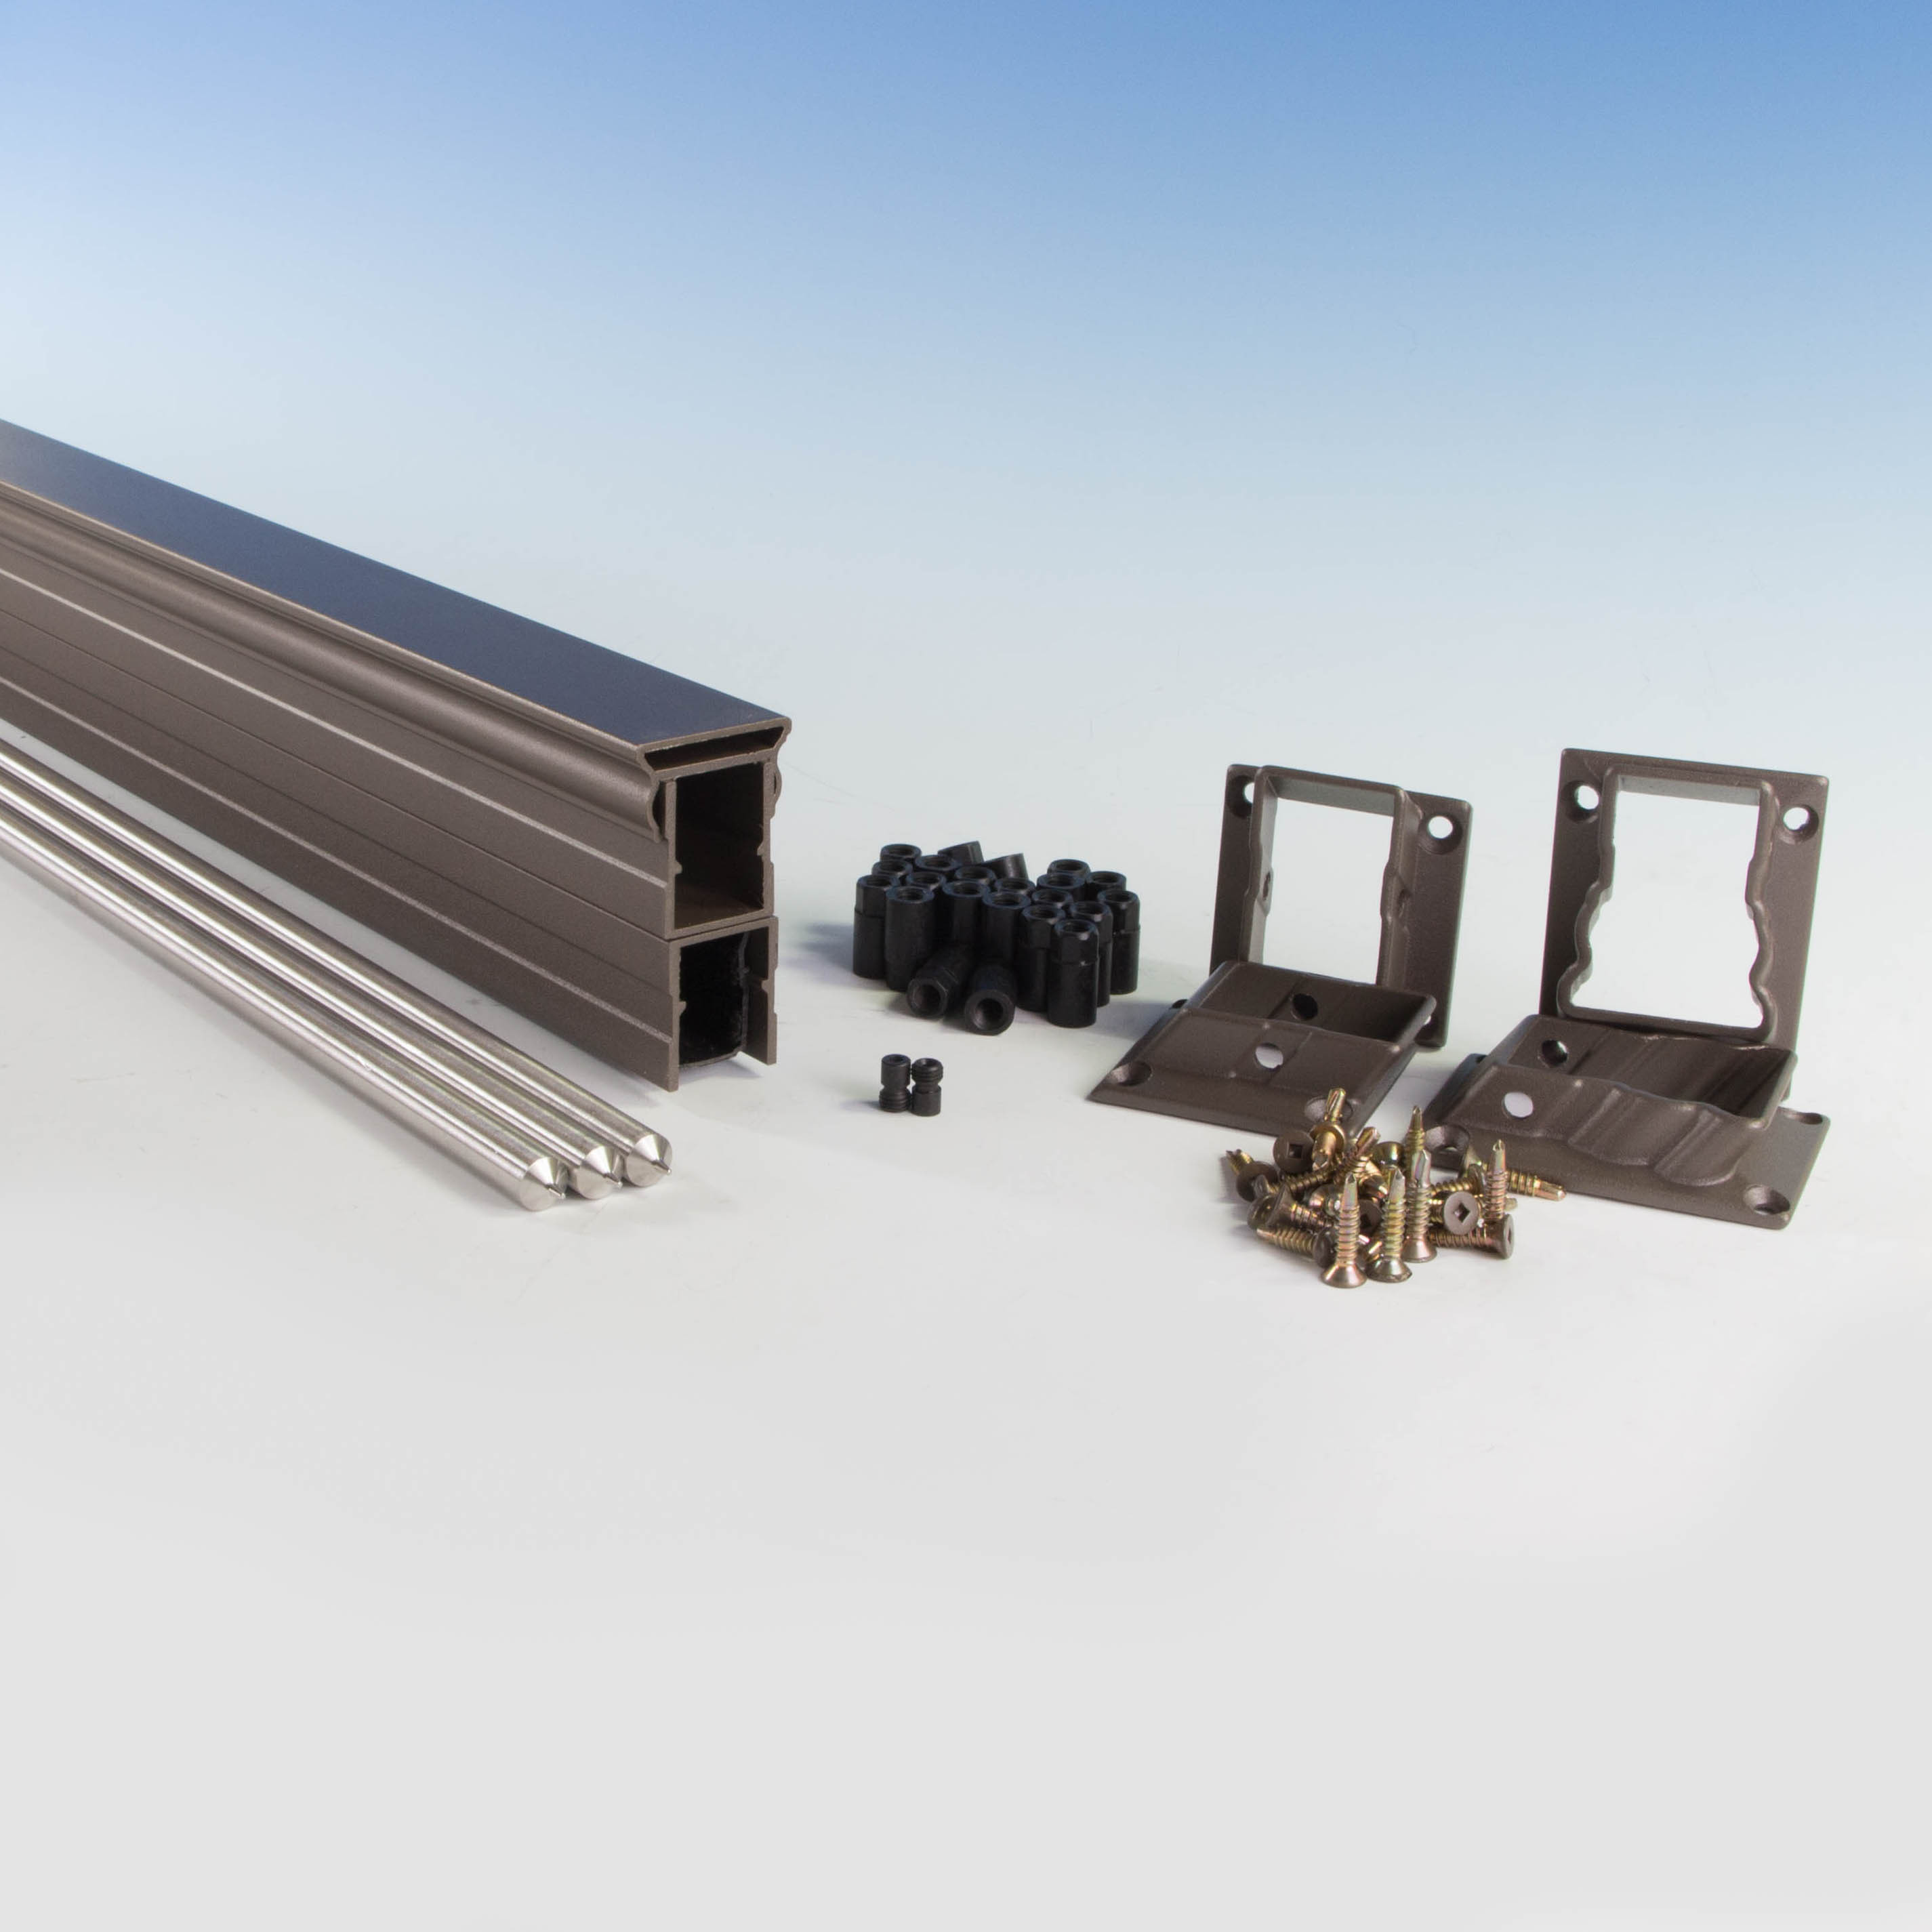 Vertical Cable Rail Stair Kit by KeyLink - DecksDirect